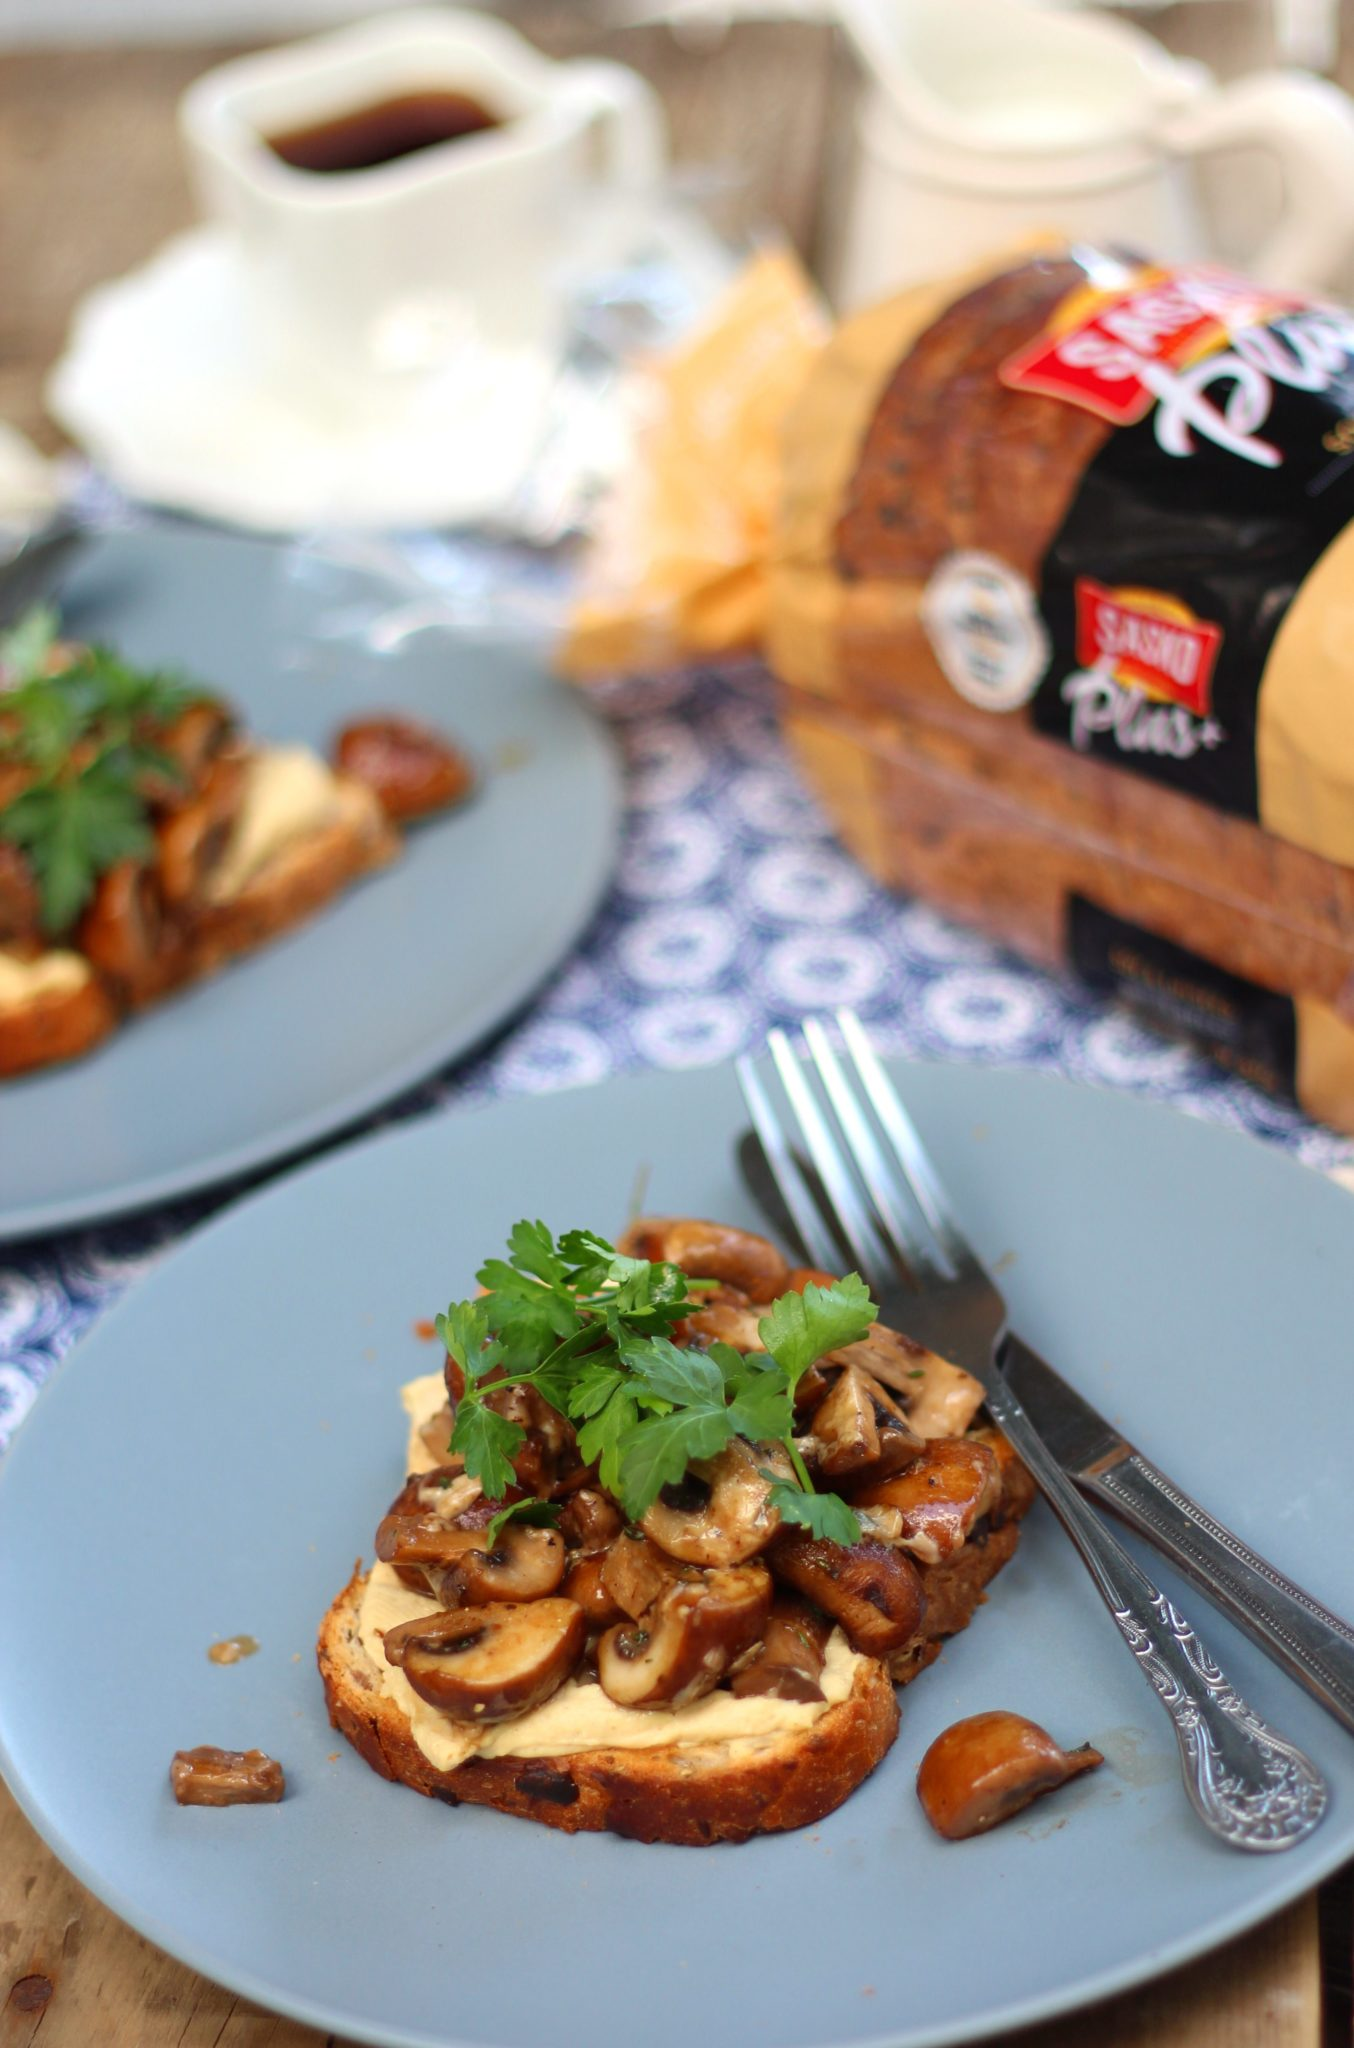 Mushrooms on toast|HarassedMom